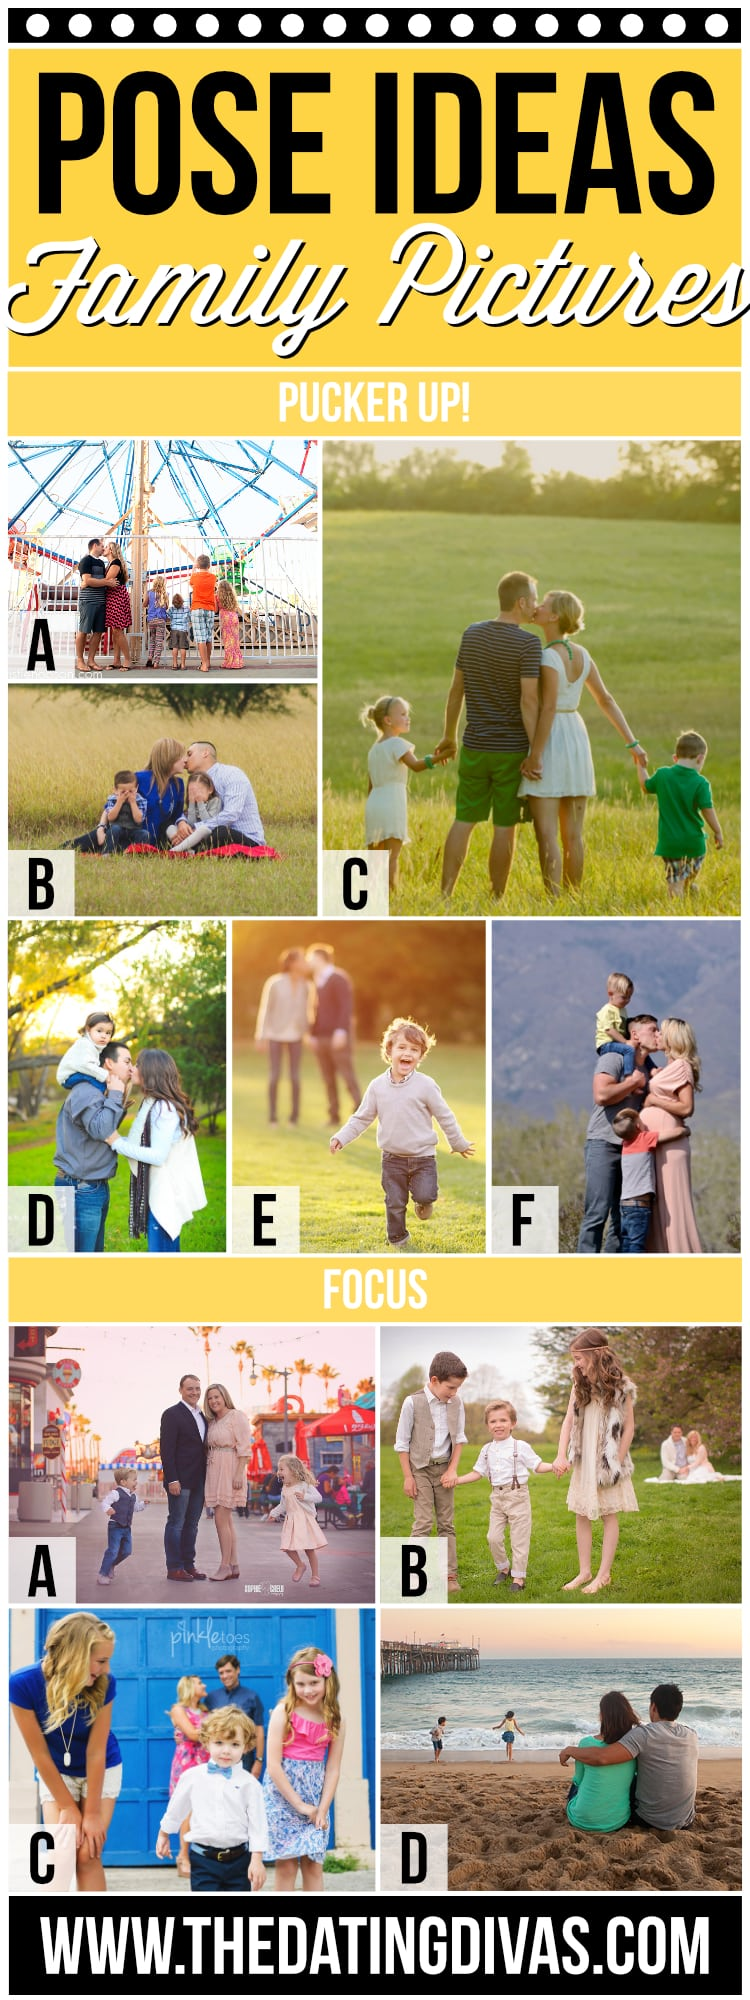 Pose Ideas for Fun Family Pictures